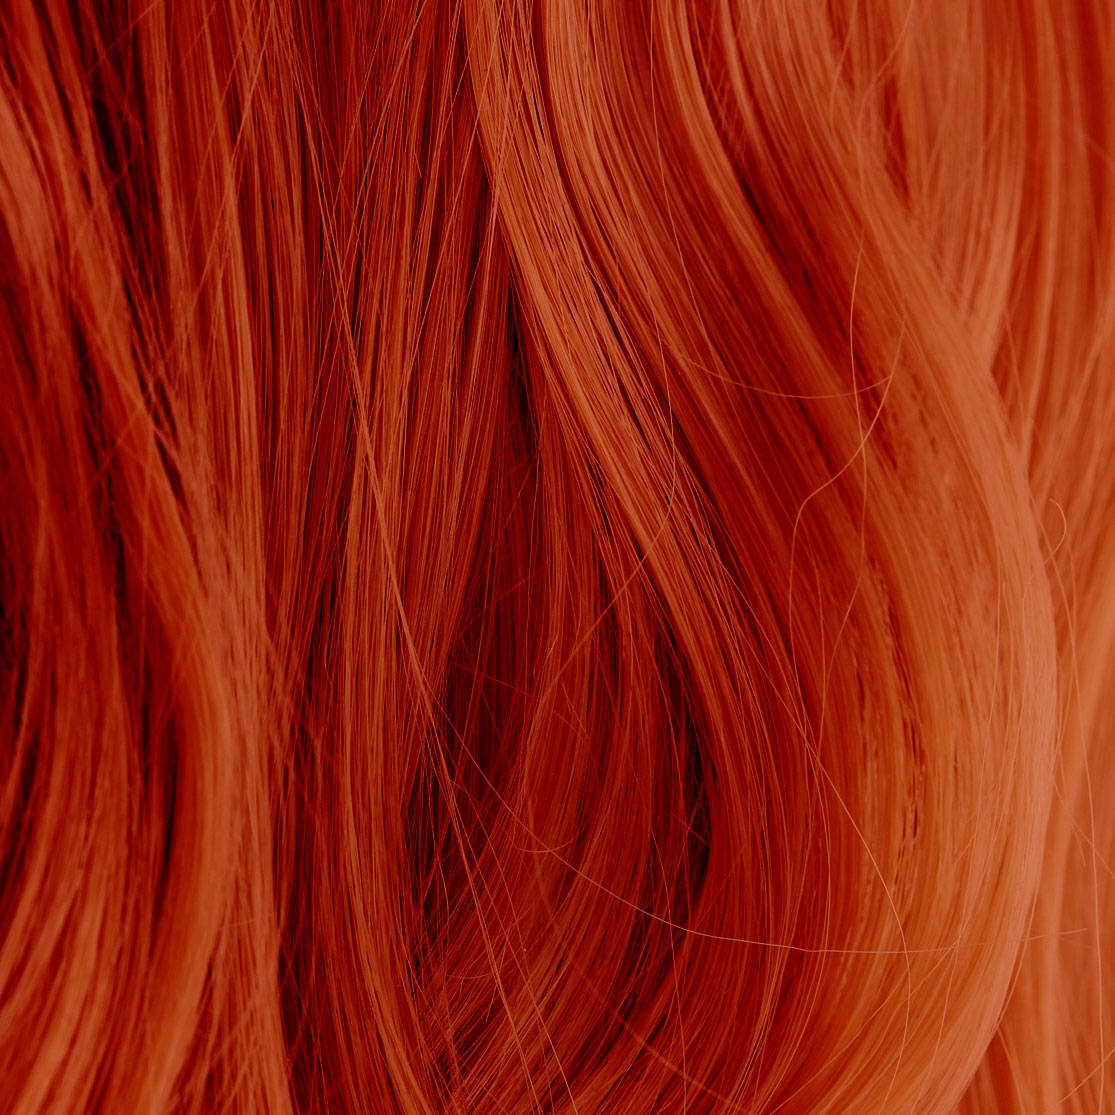 Art color hair - Pure Henna Hair Dye